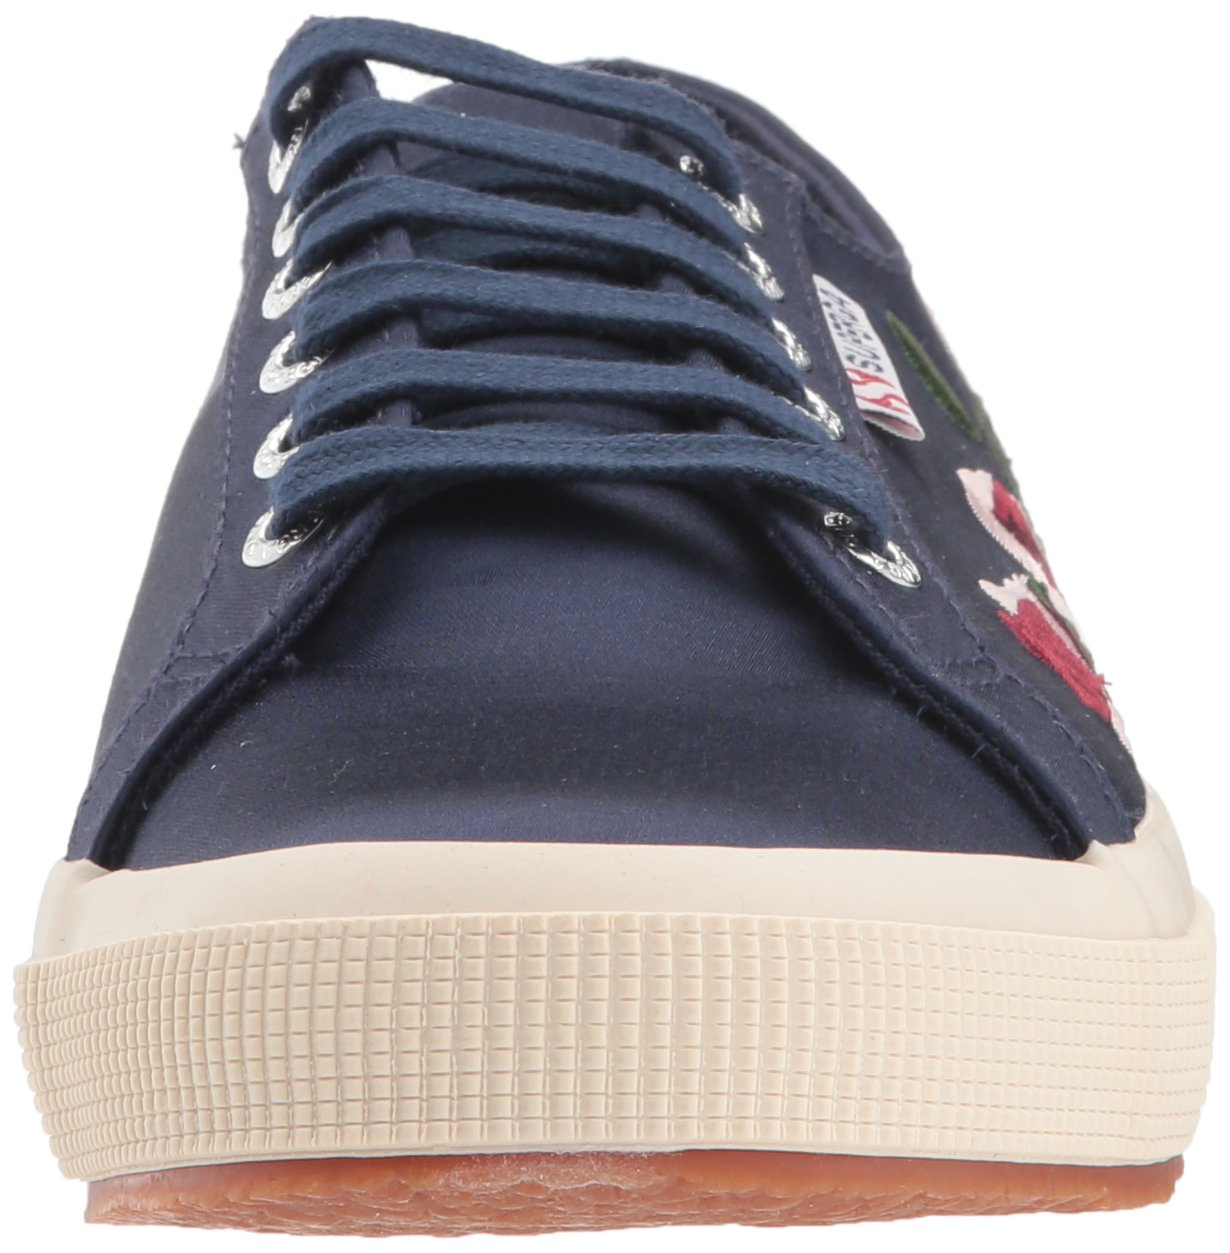 Superga Women's 2750 Embphenw Sneaker B0767V1QVK 39.5 Medium EU (8.5 US)|Navy